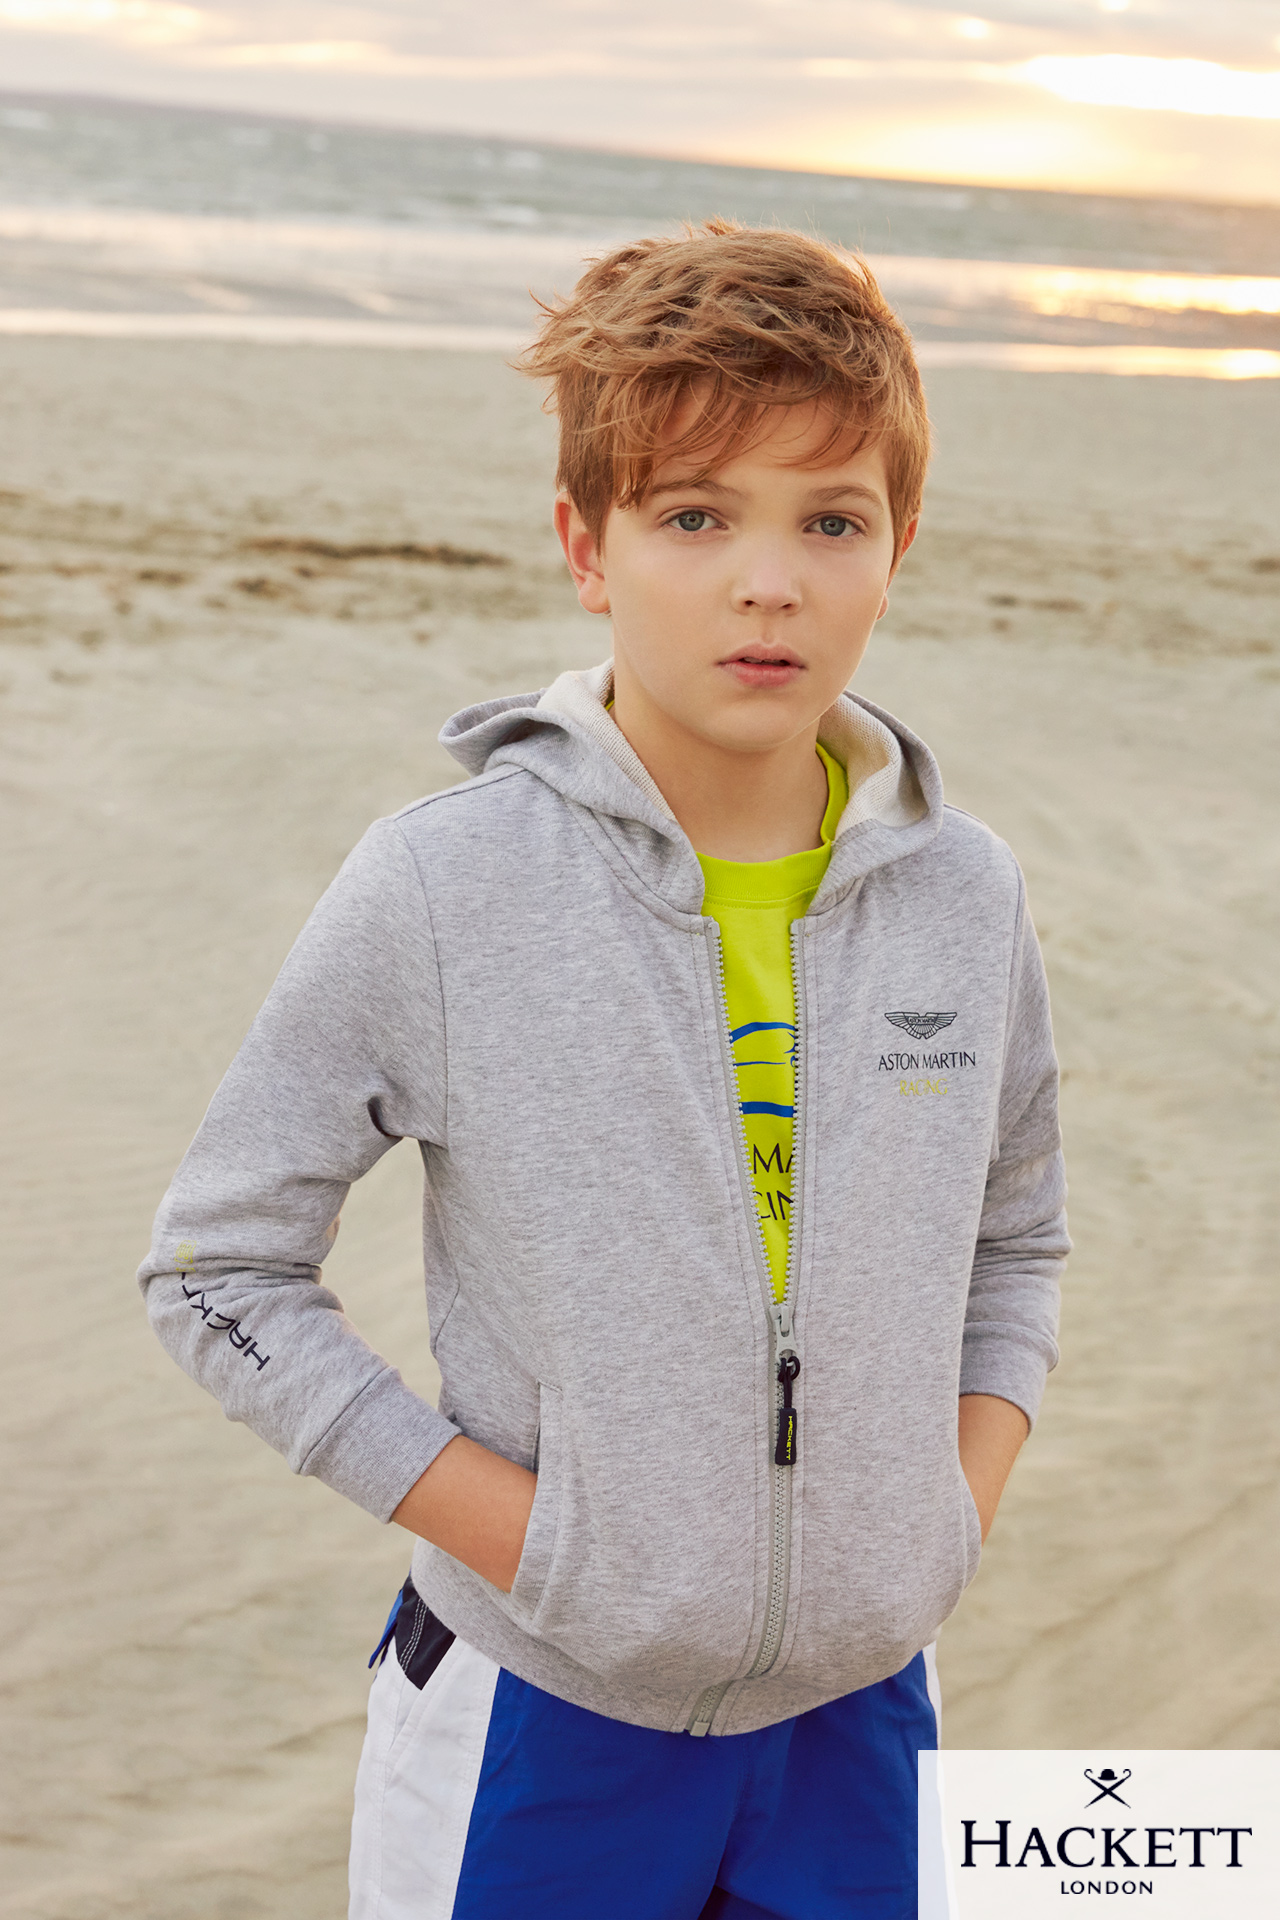 Hackett boys kids fashion campaign Spring Summer beach